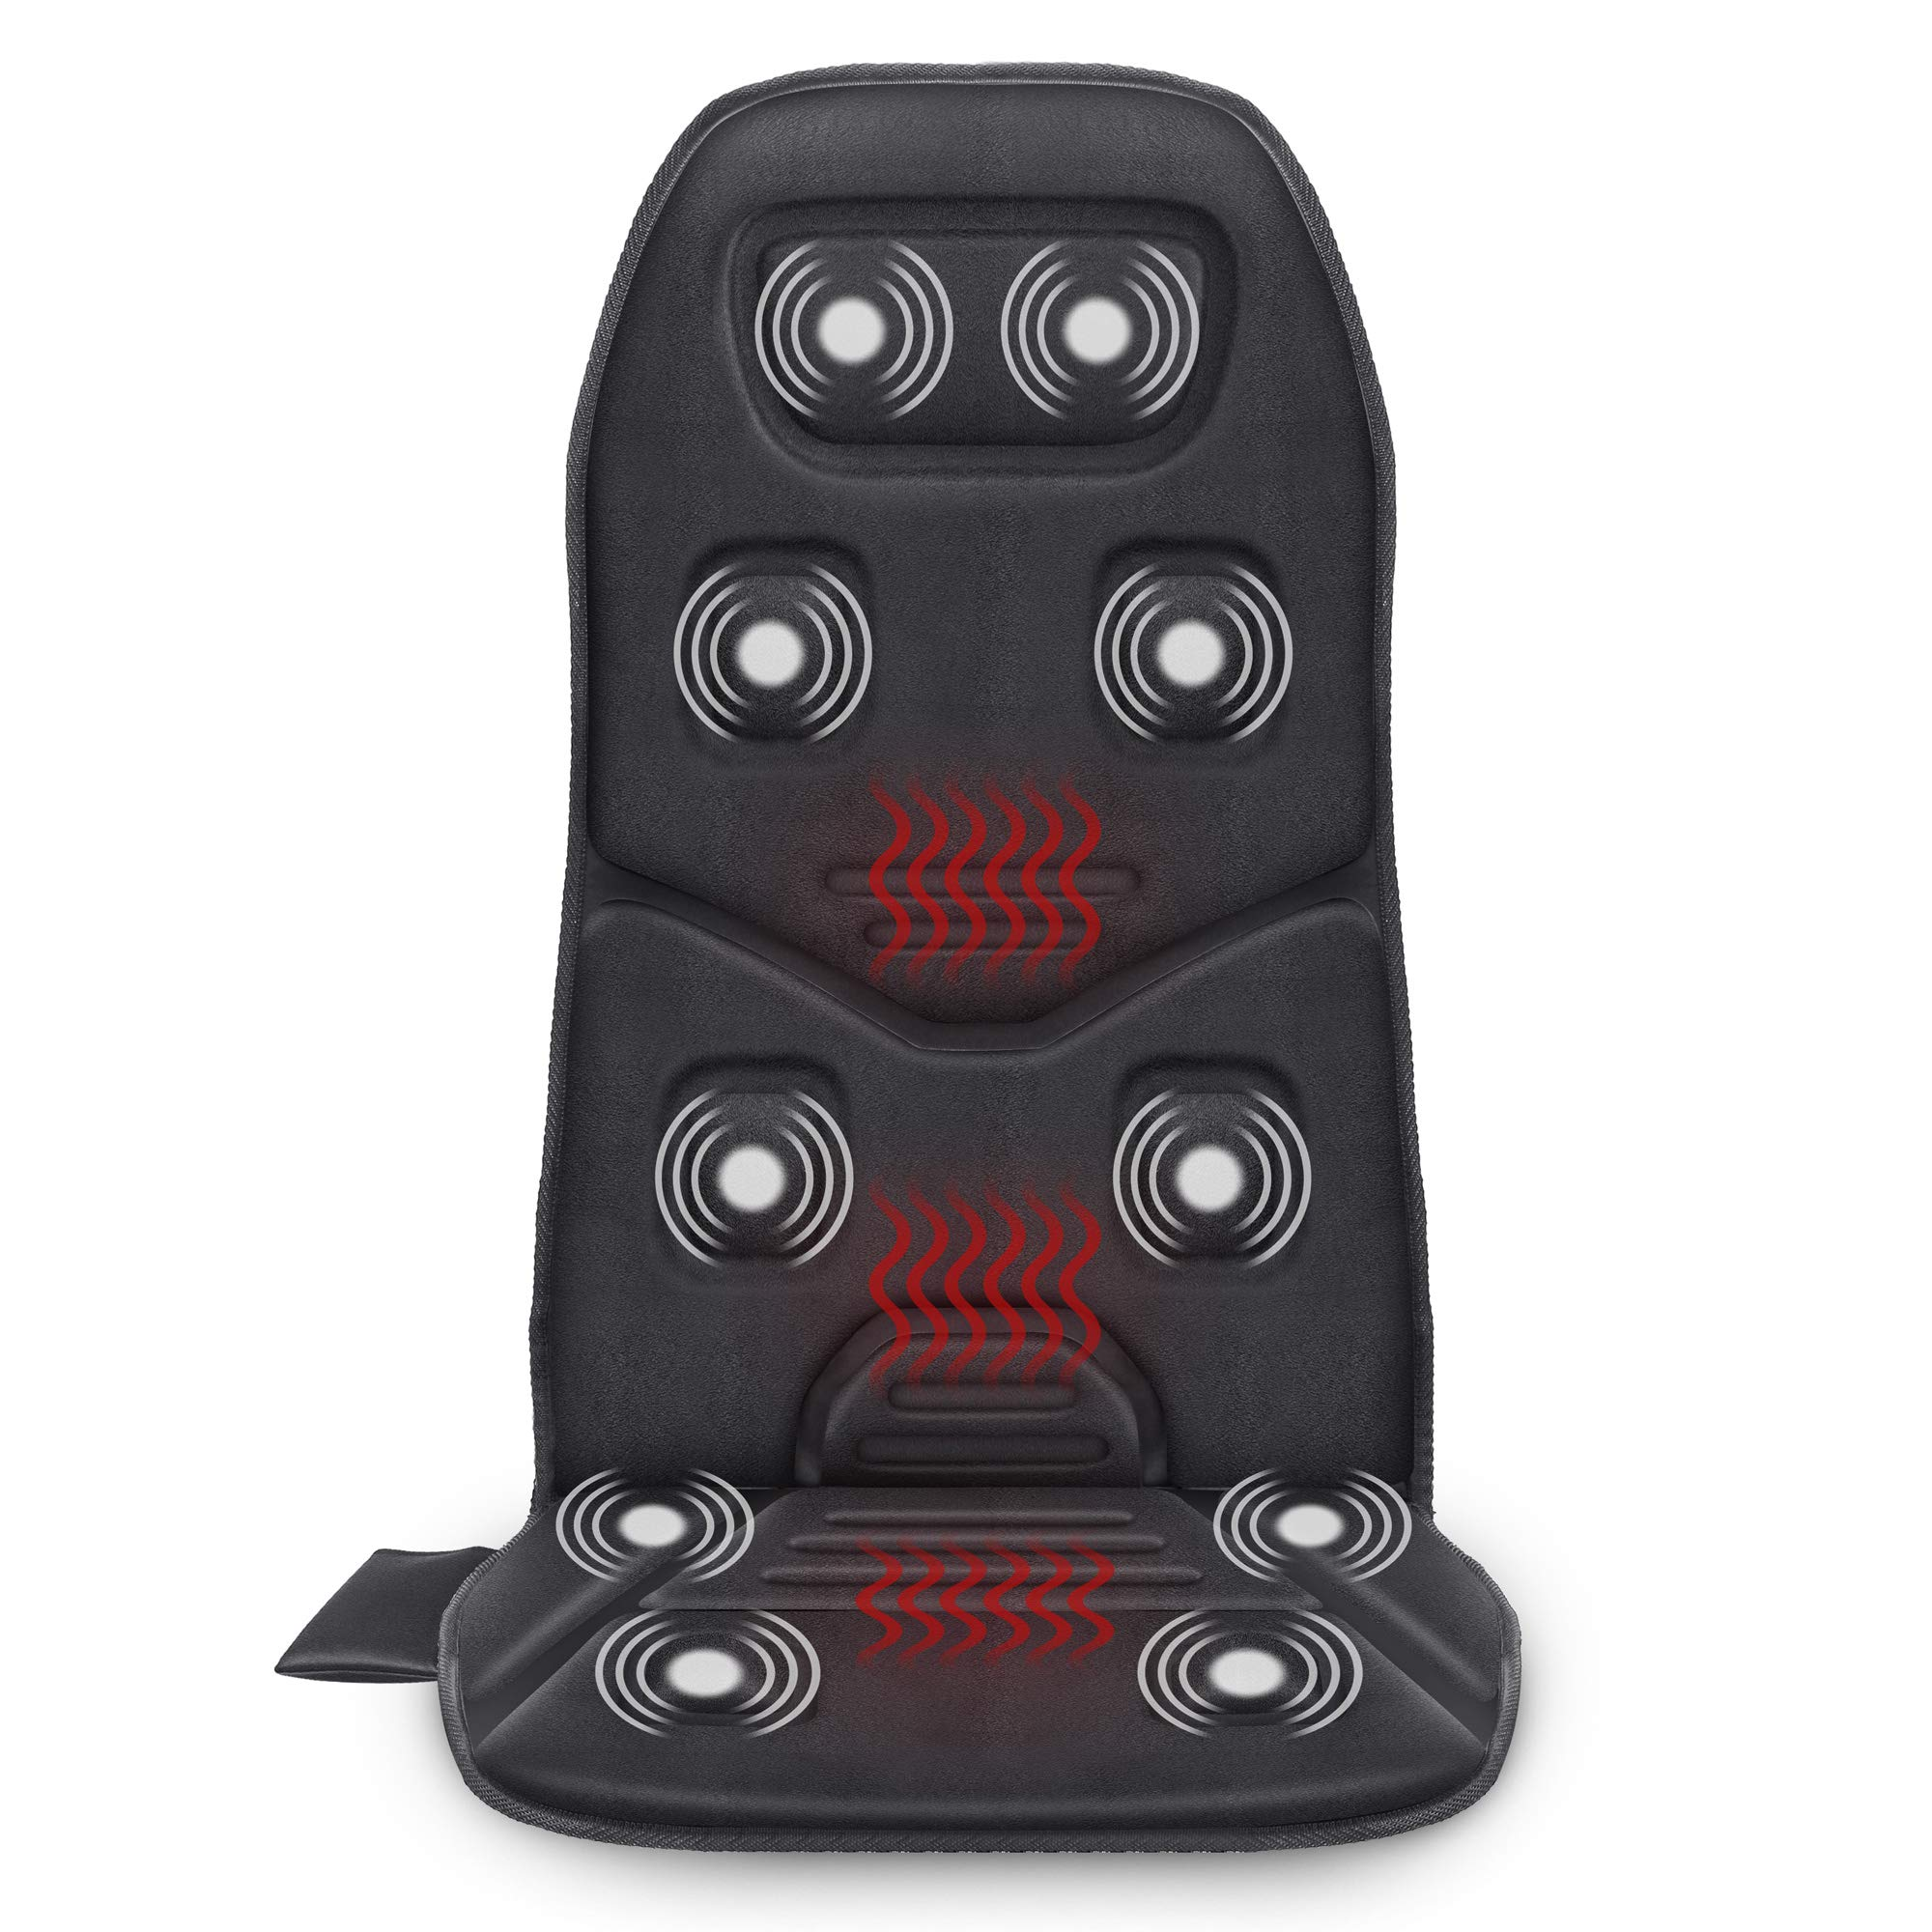 Comfier Massage Seat Cushion with Heat - 10 Vibration Motors, 3 Heating Pad, car Back Massager for Chair, Massage Chair Pad for Back Pain Relief car and Home Office use by COMFIER